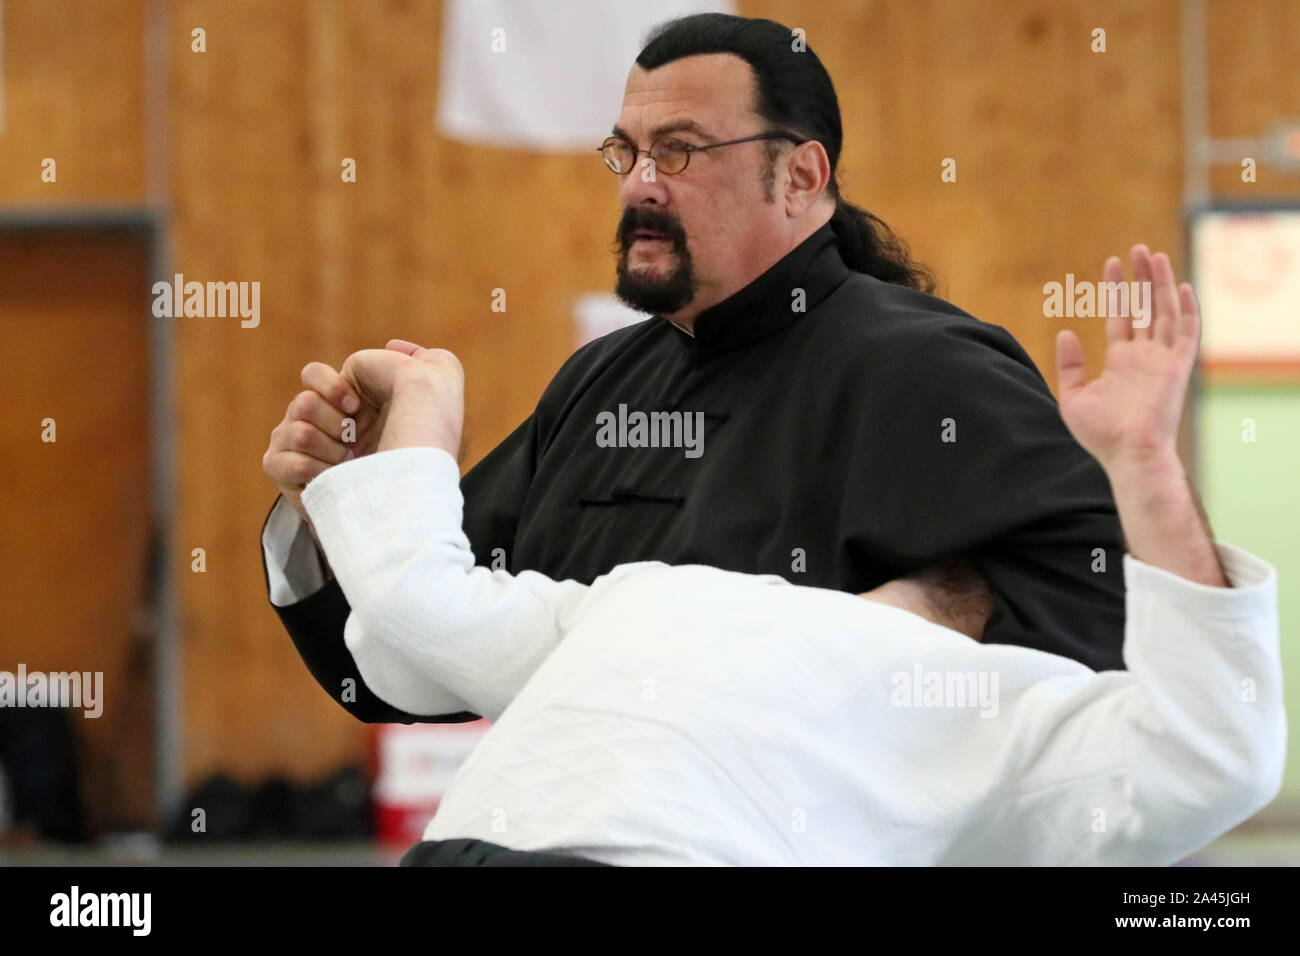 Moscow Russia October 12 2019 American Actor And Martial Artist Steven Seagal Back Gives An Aikido